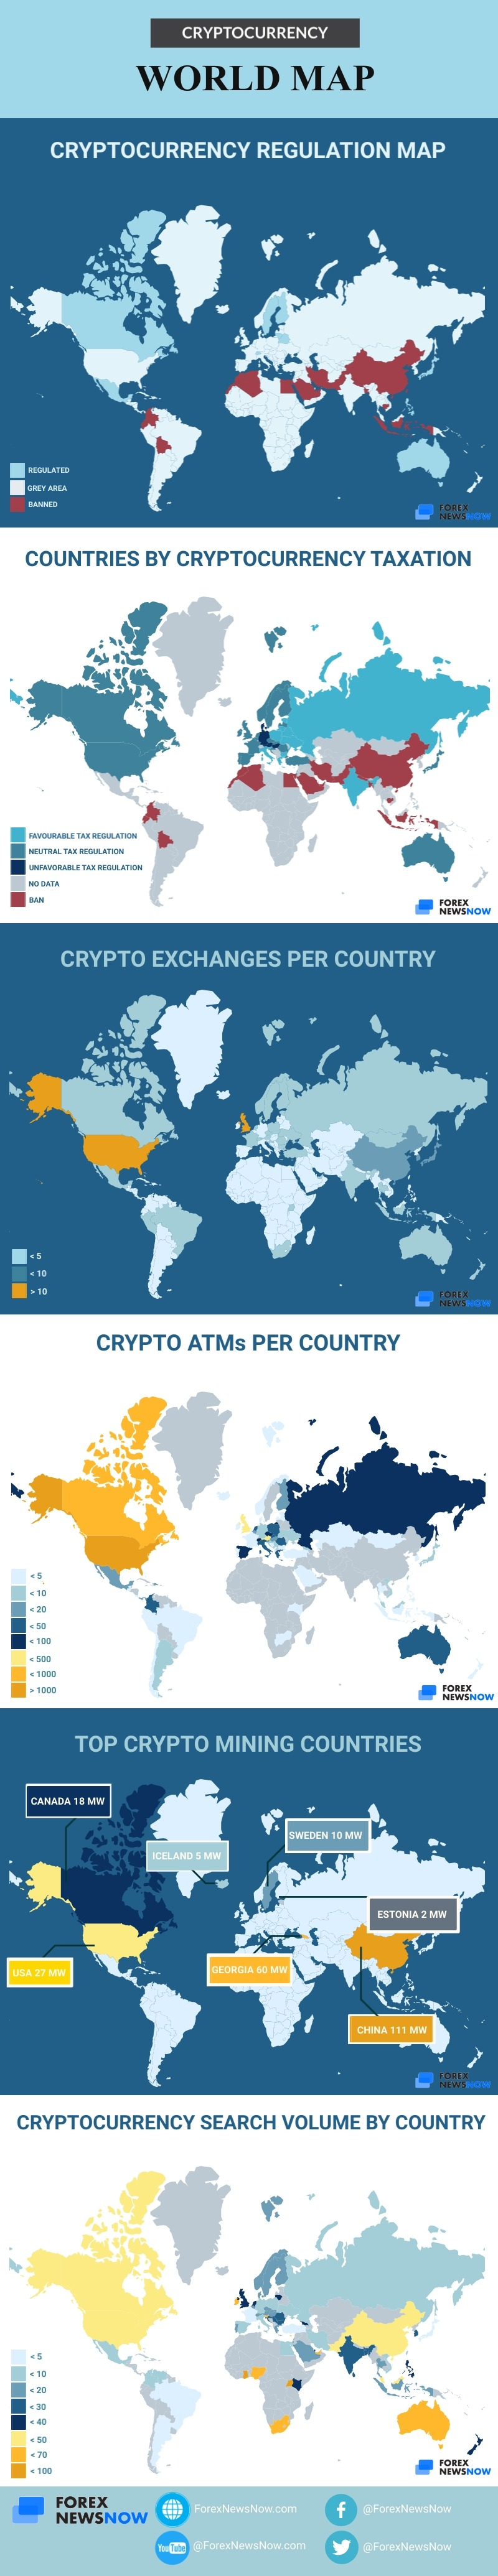 Cryptocurrency around the world